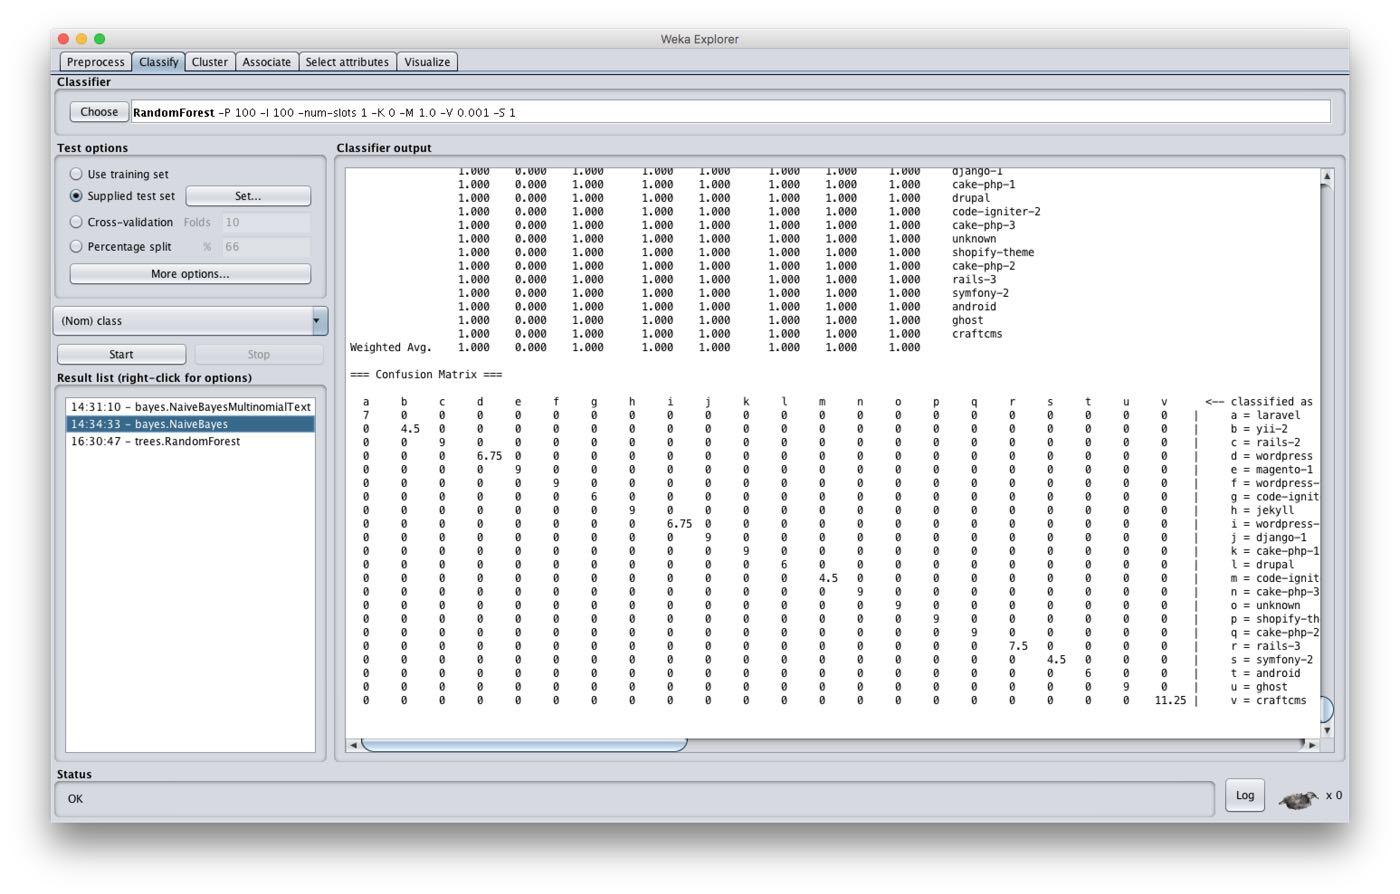 A screenshot of Weka user interface